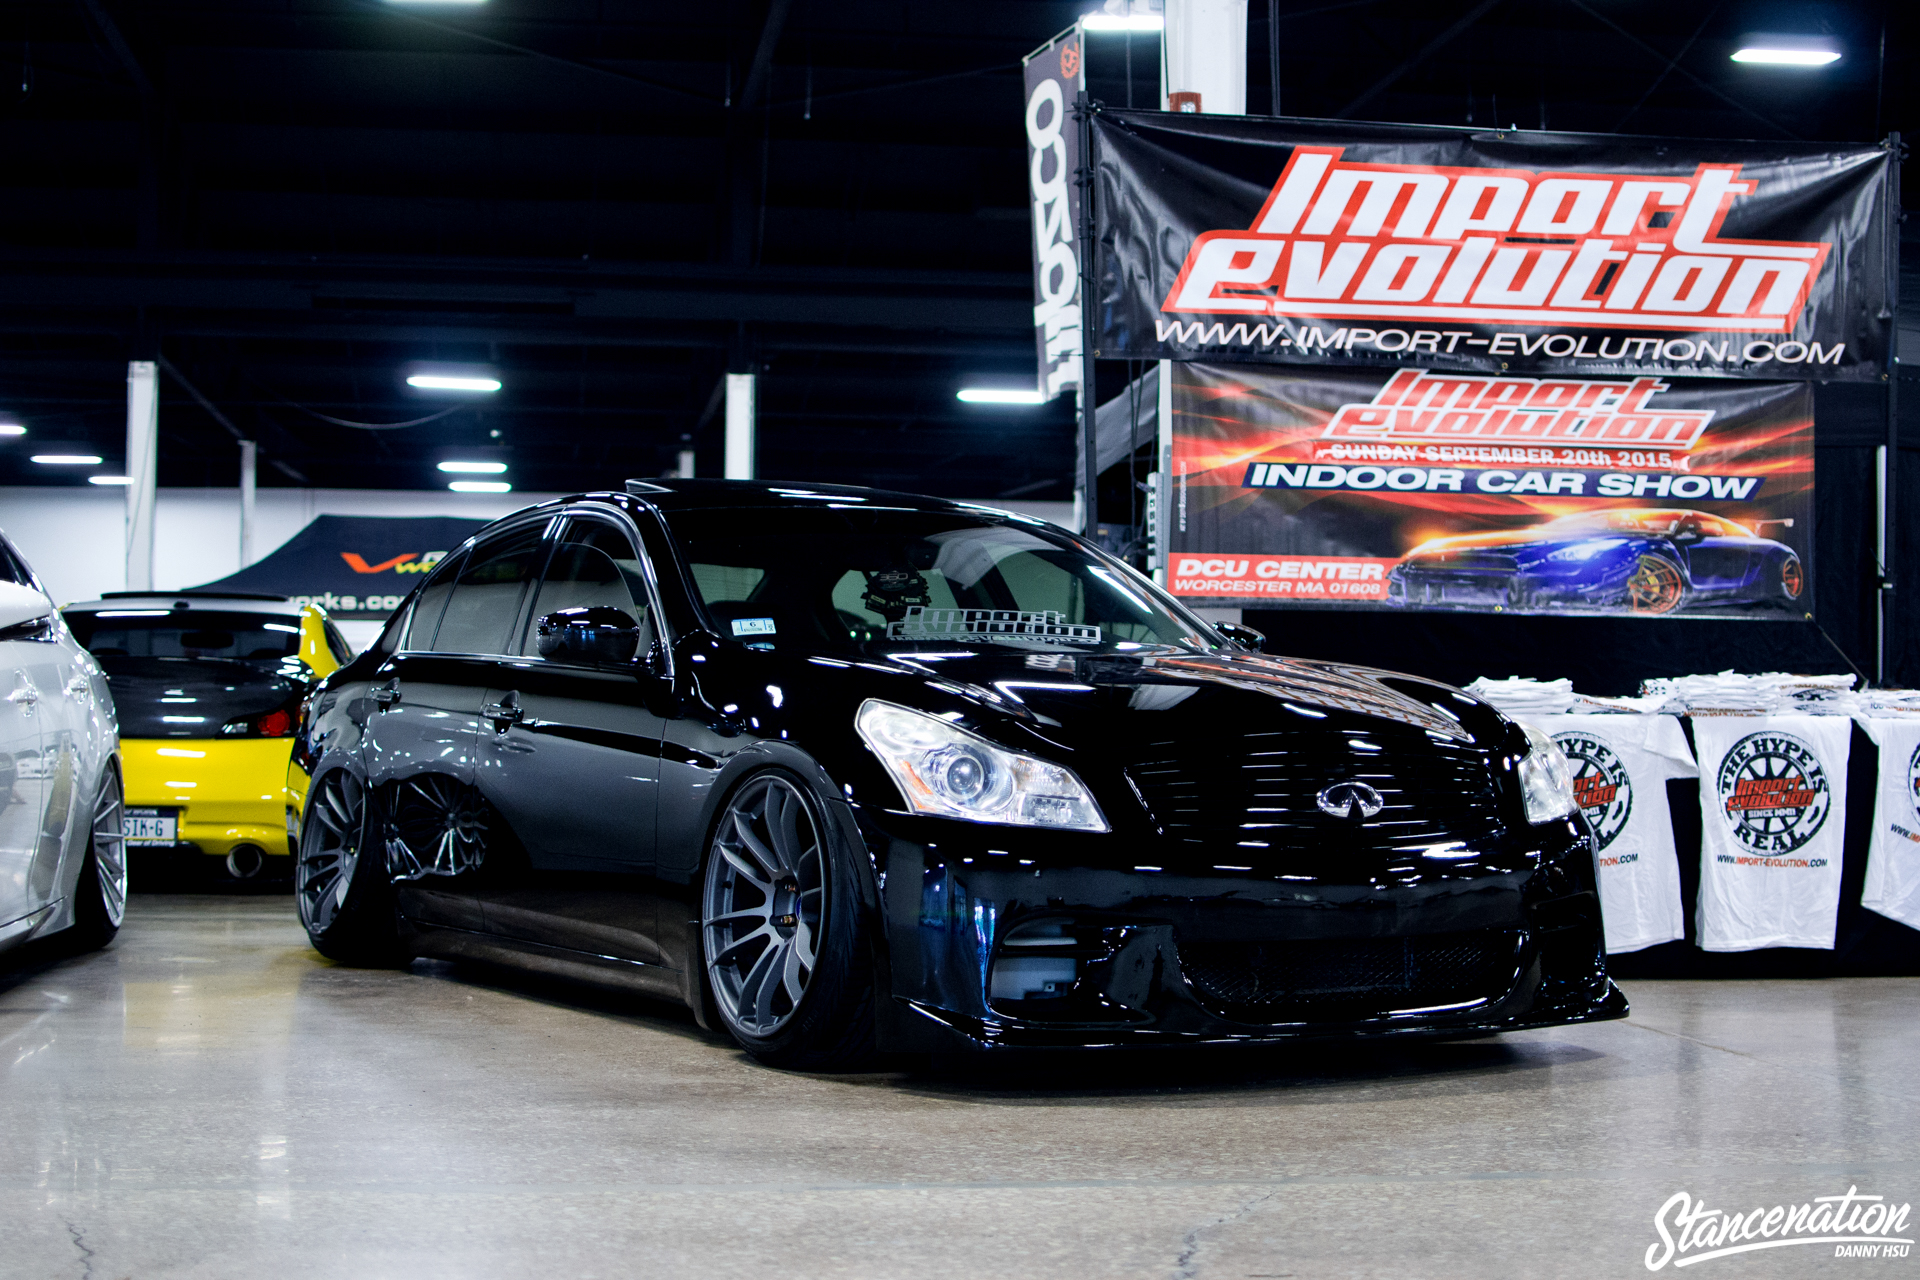 Tuner Evolution Photo Coverage StanceNation Form - Dcu center car show